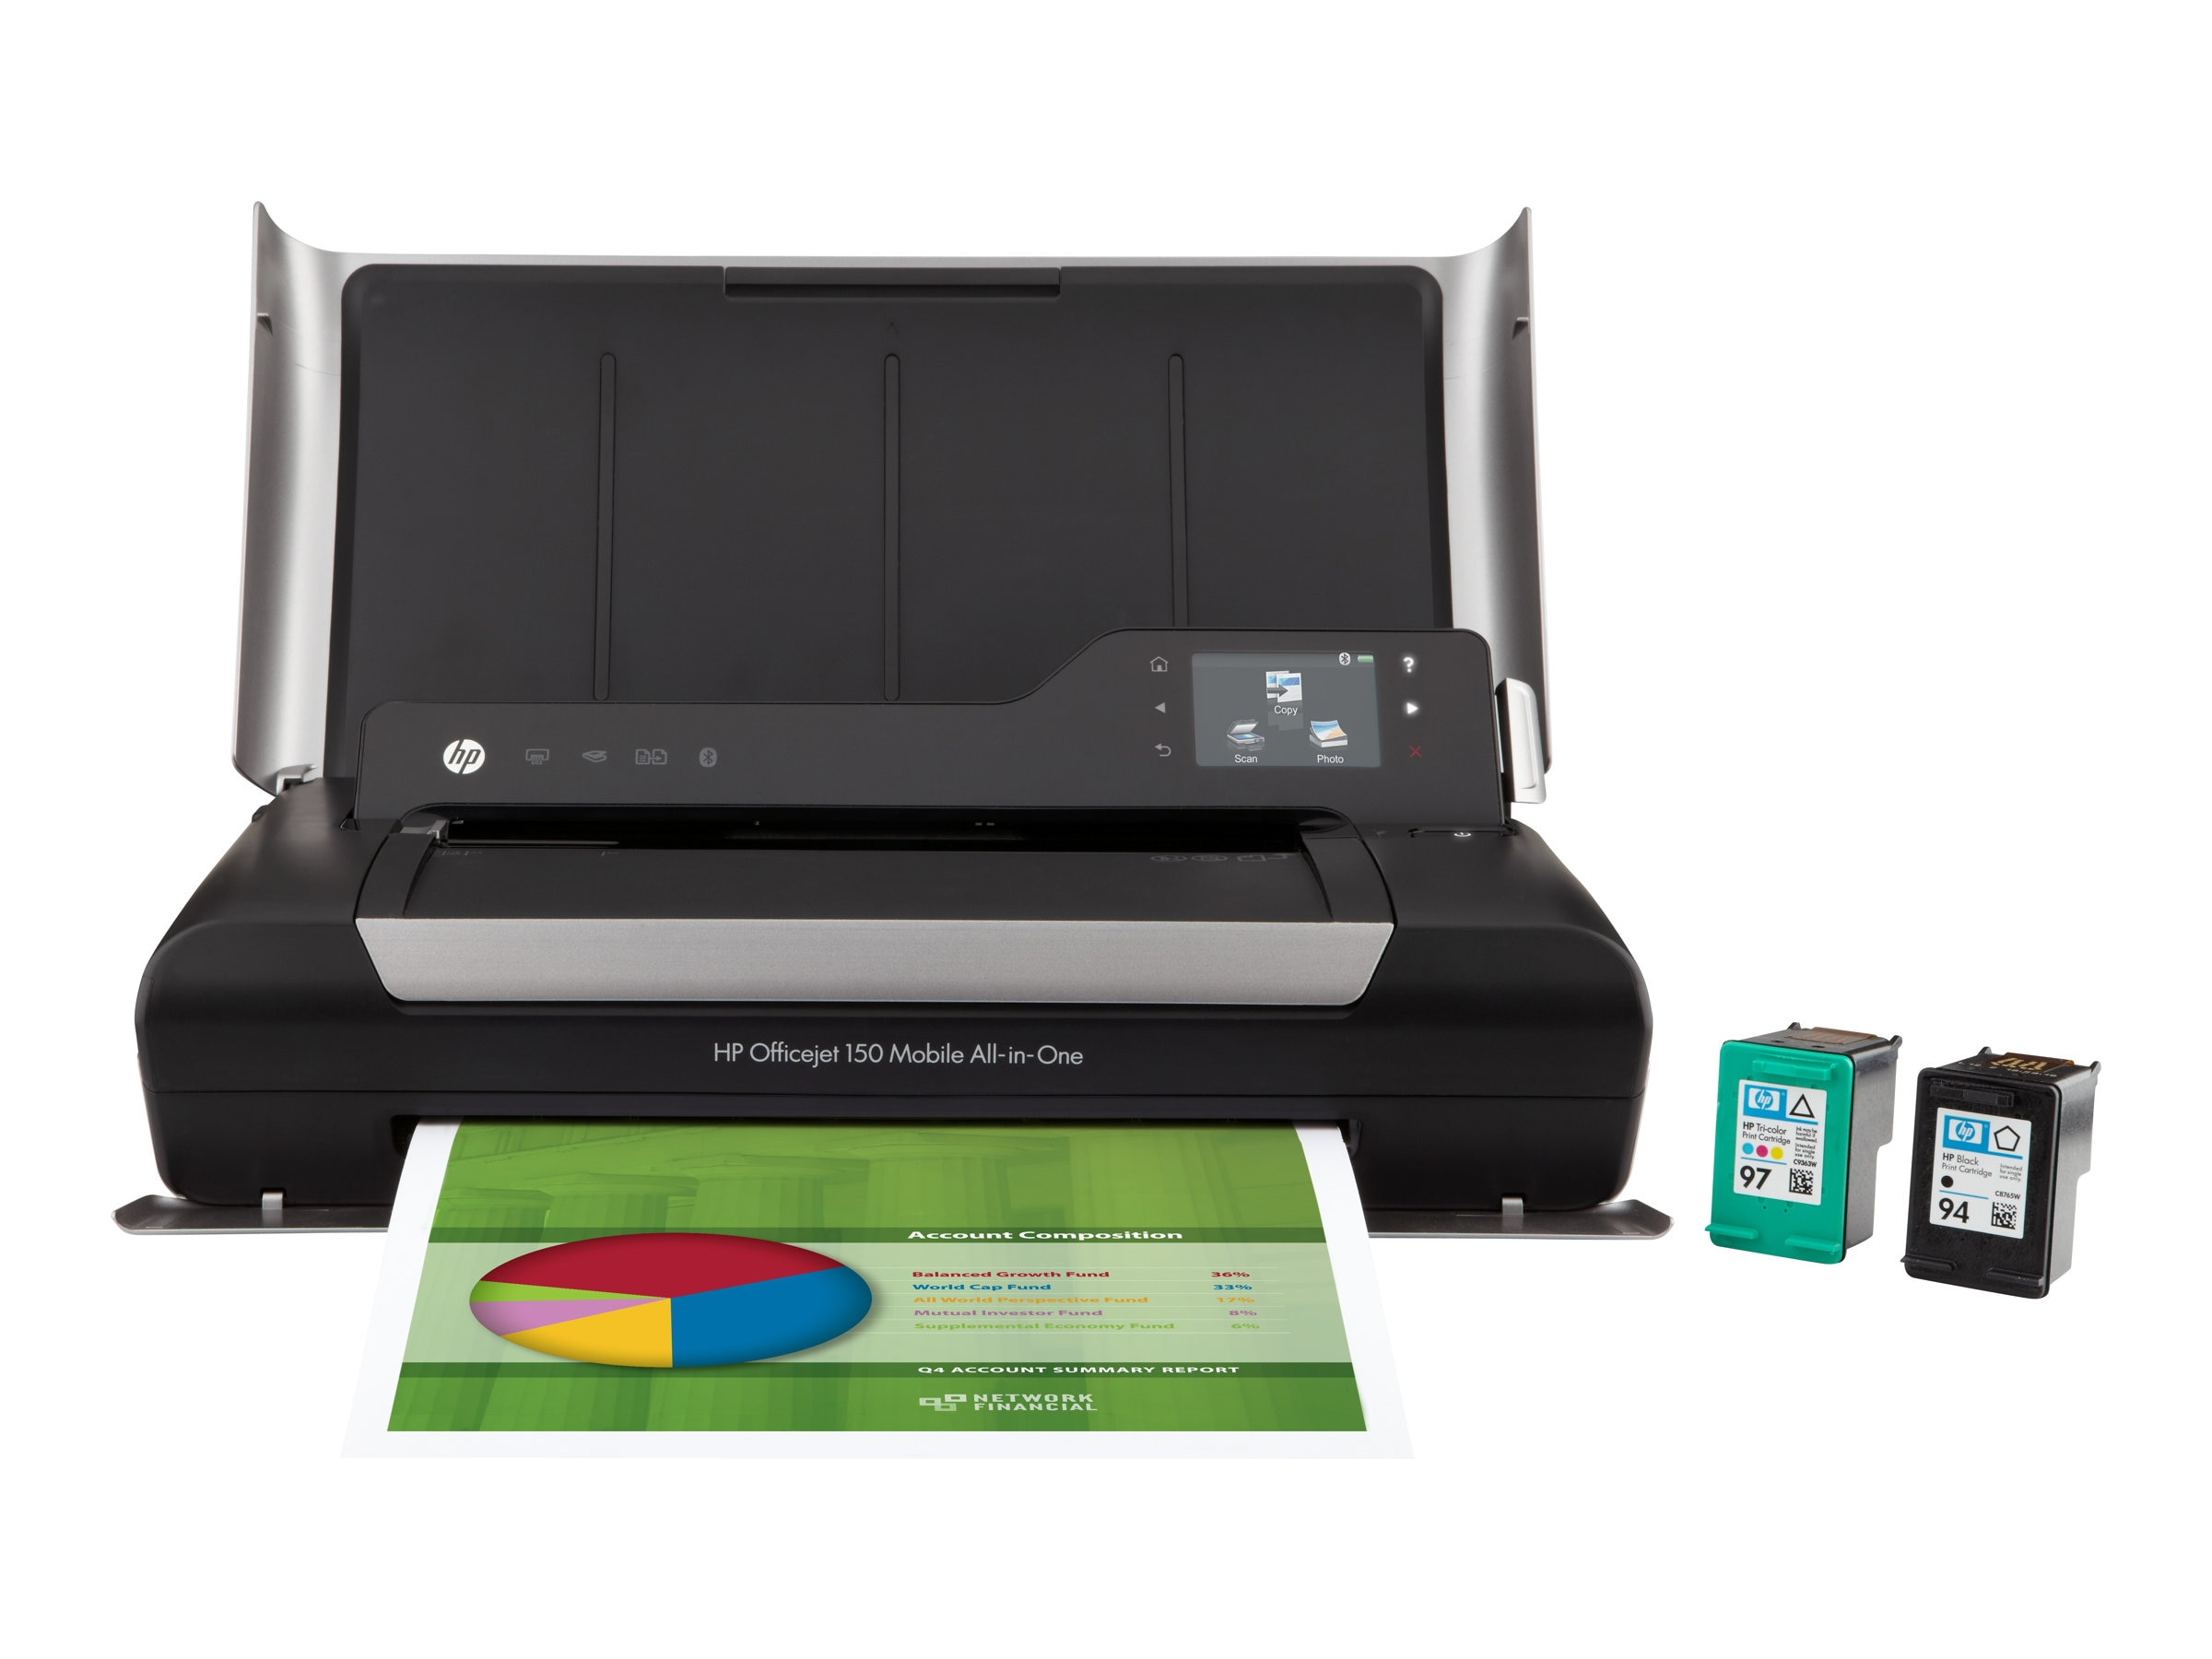 HP Officejet 150 Mobile All-In-One Printer, CN550A#B1H